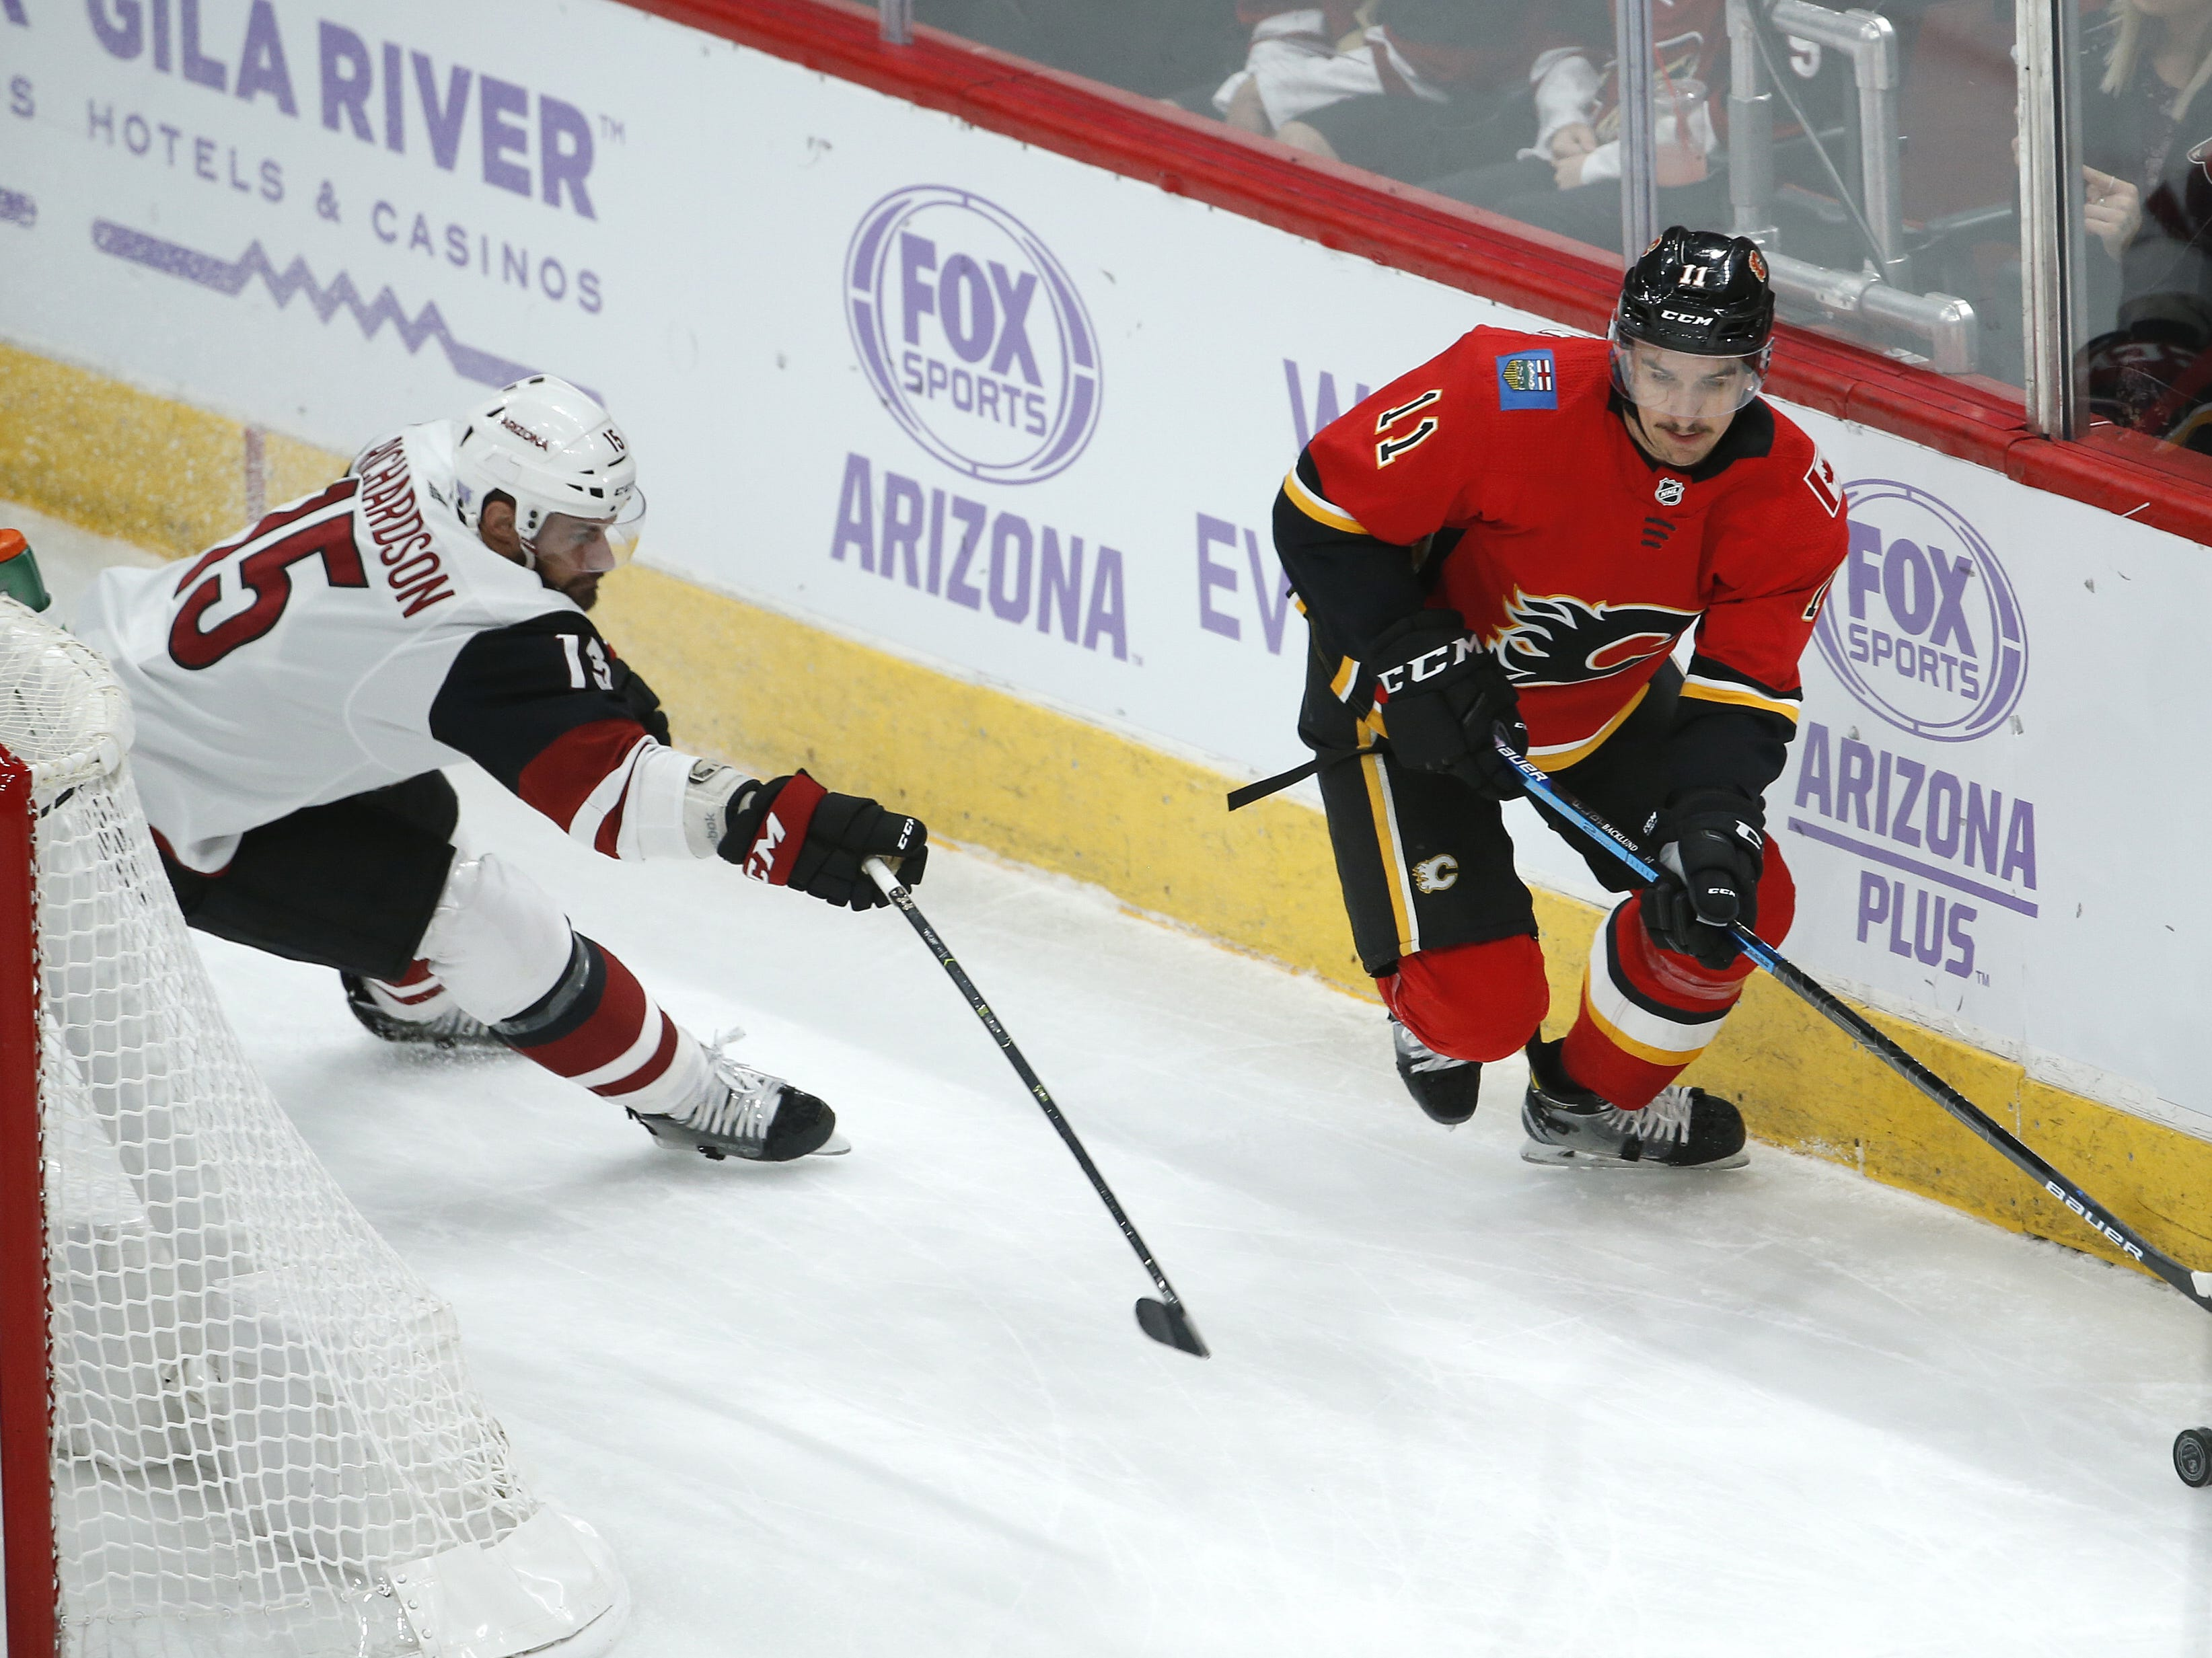 Flames' Mikael Backlund (11) skates past Coyotes' Brad Richardson (15) during the first period at Gila River Arena in Glendale, Ariz. on November 25, 2018.